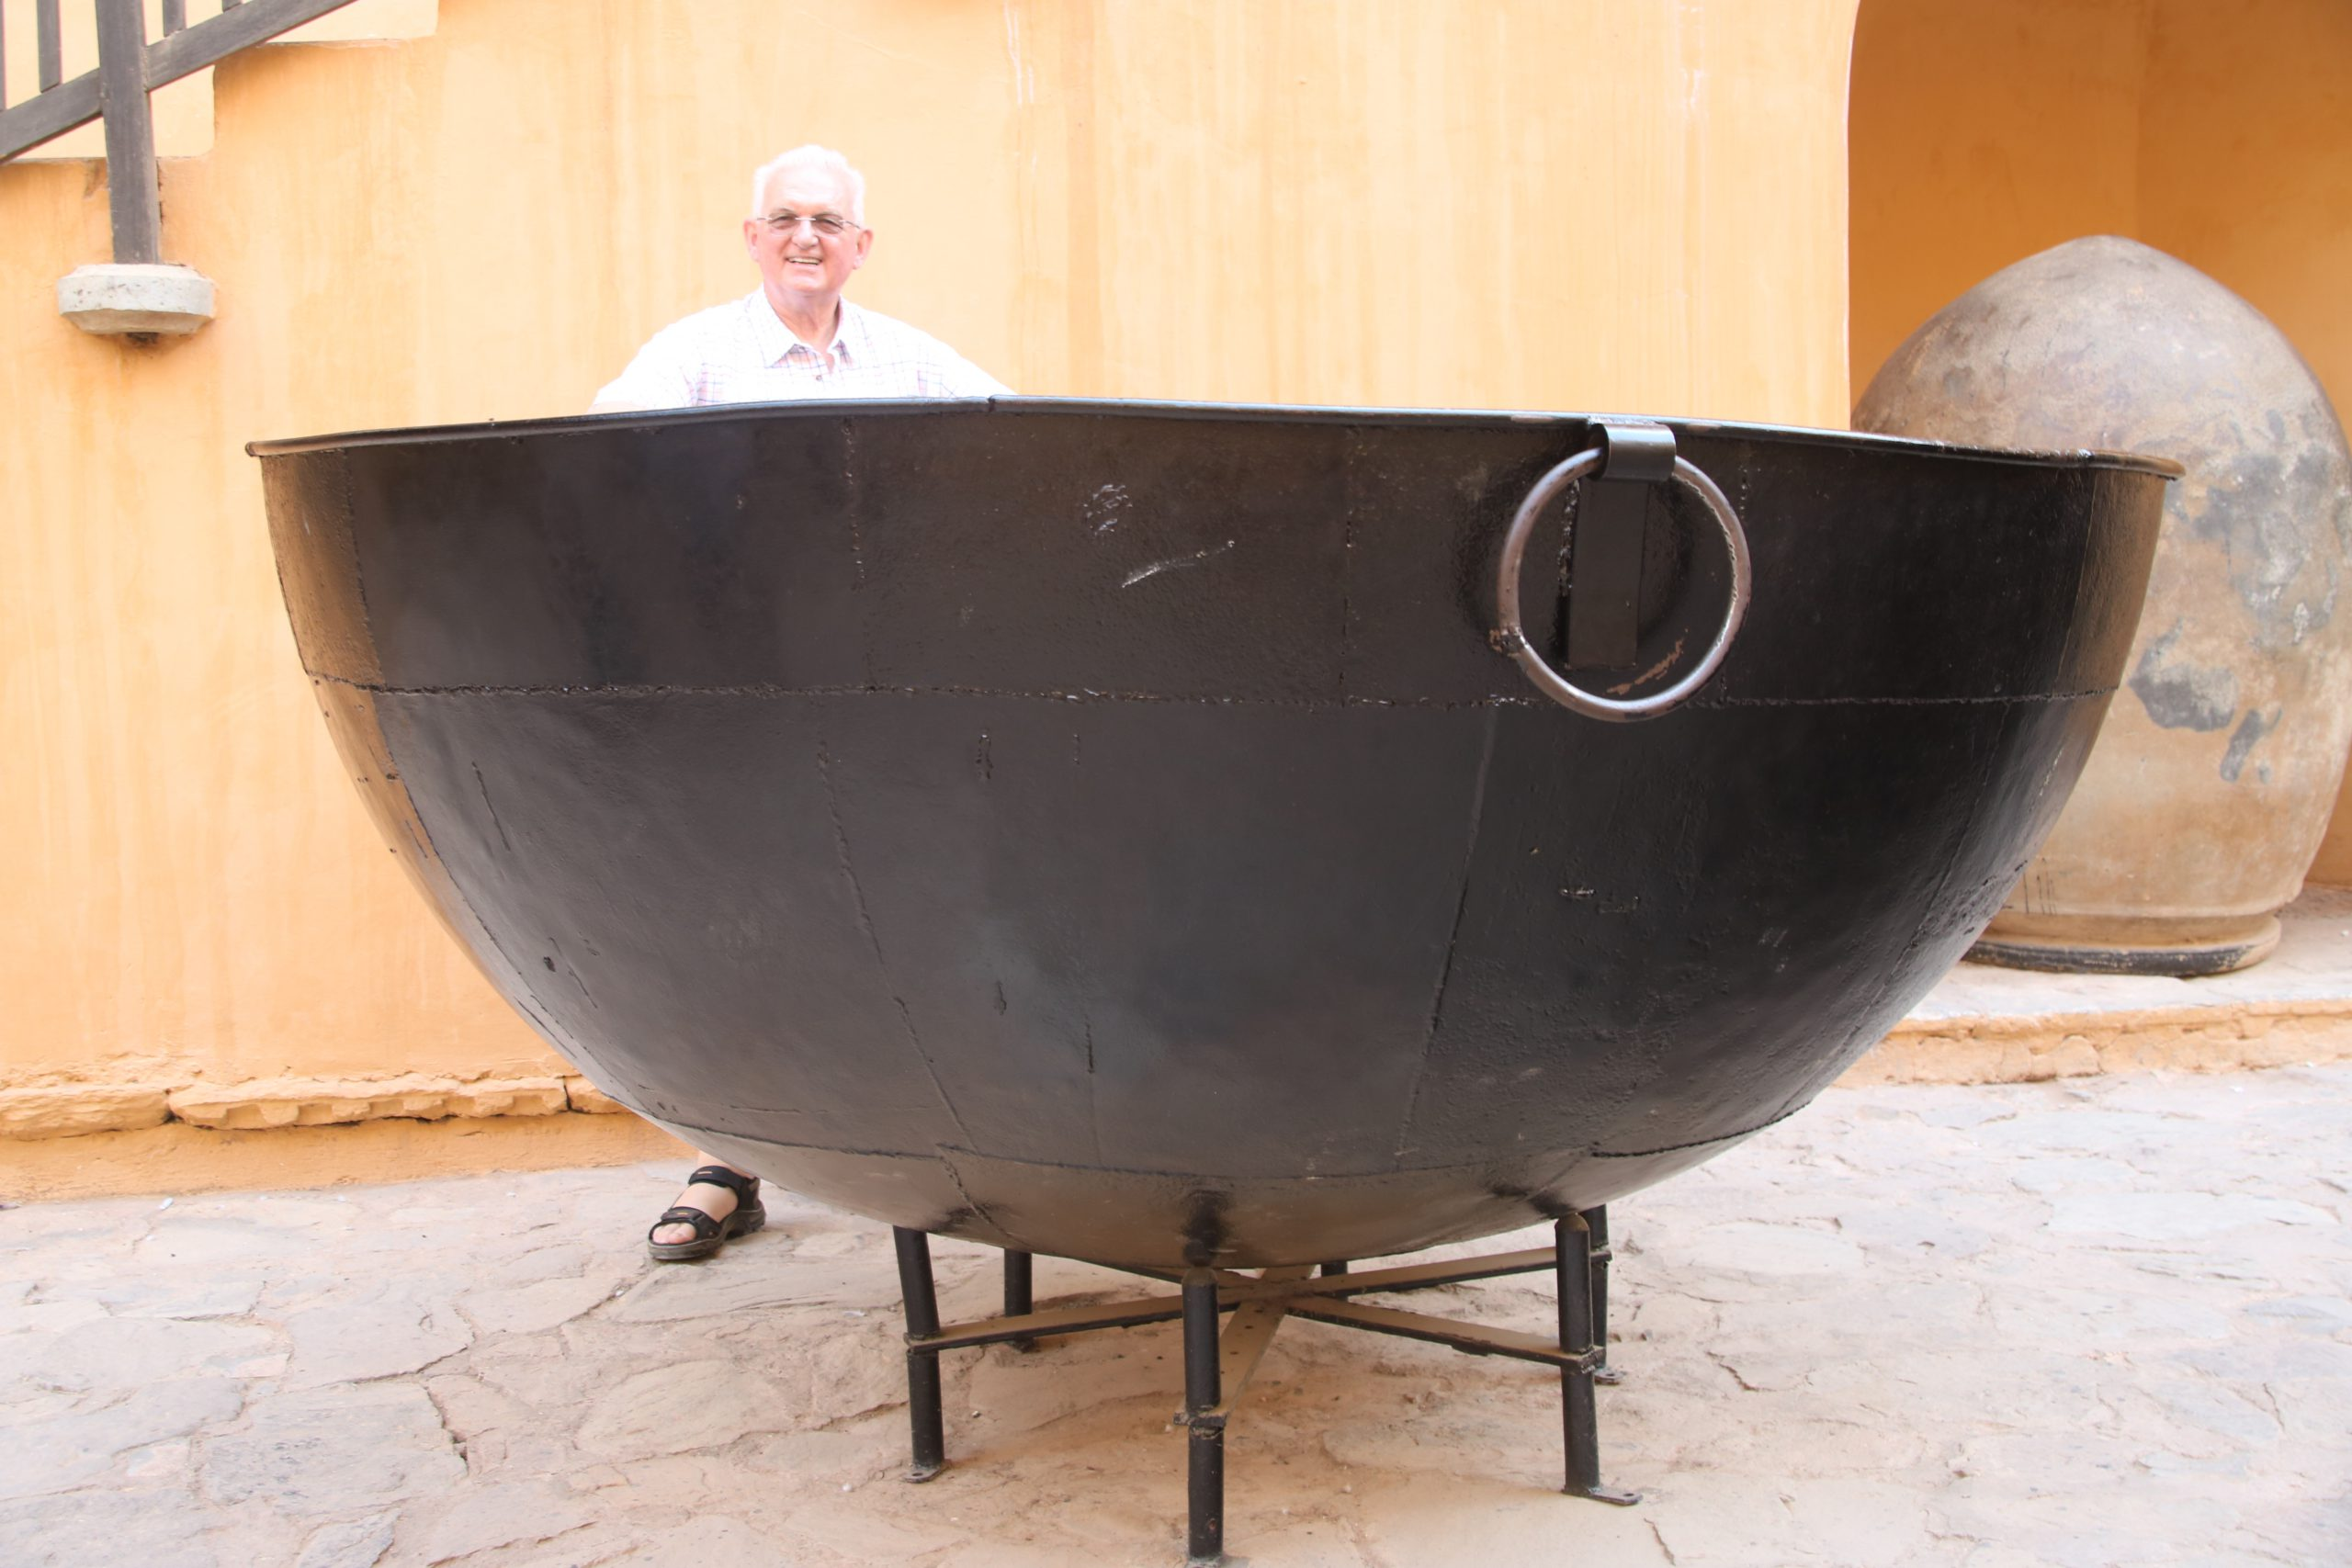 Chris posing next to a very large bowl